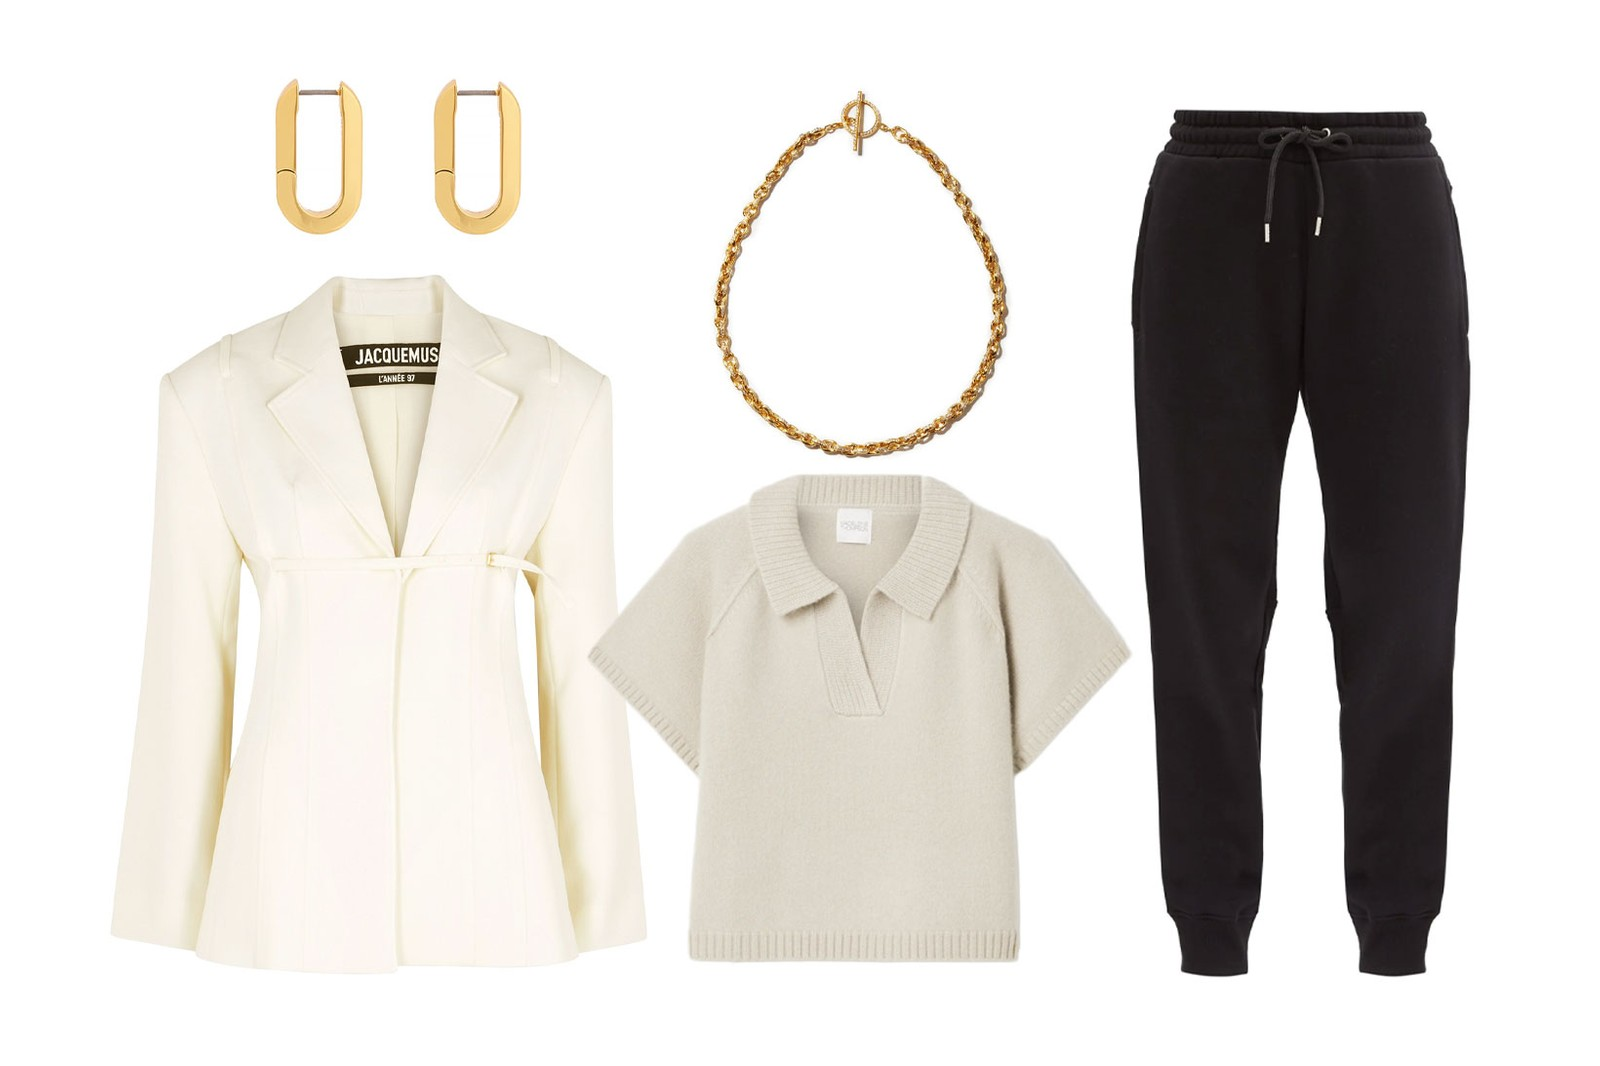 tracksuit styling editors guide outfits jacquemus jacket paco rabanne sweatpants